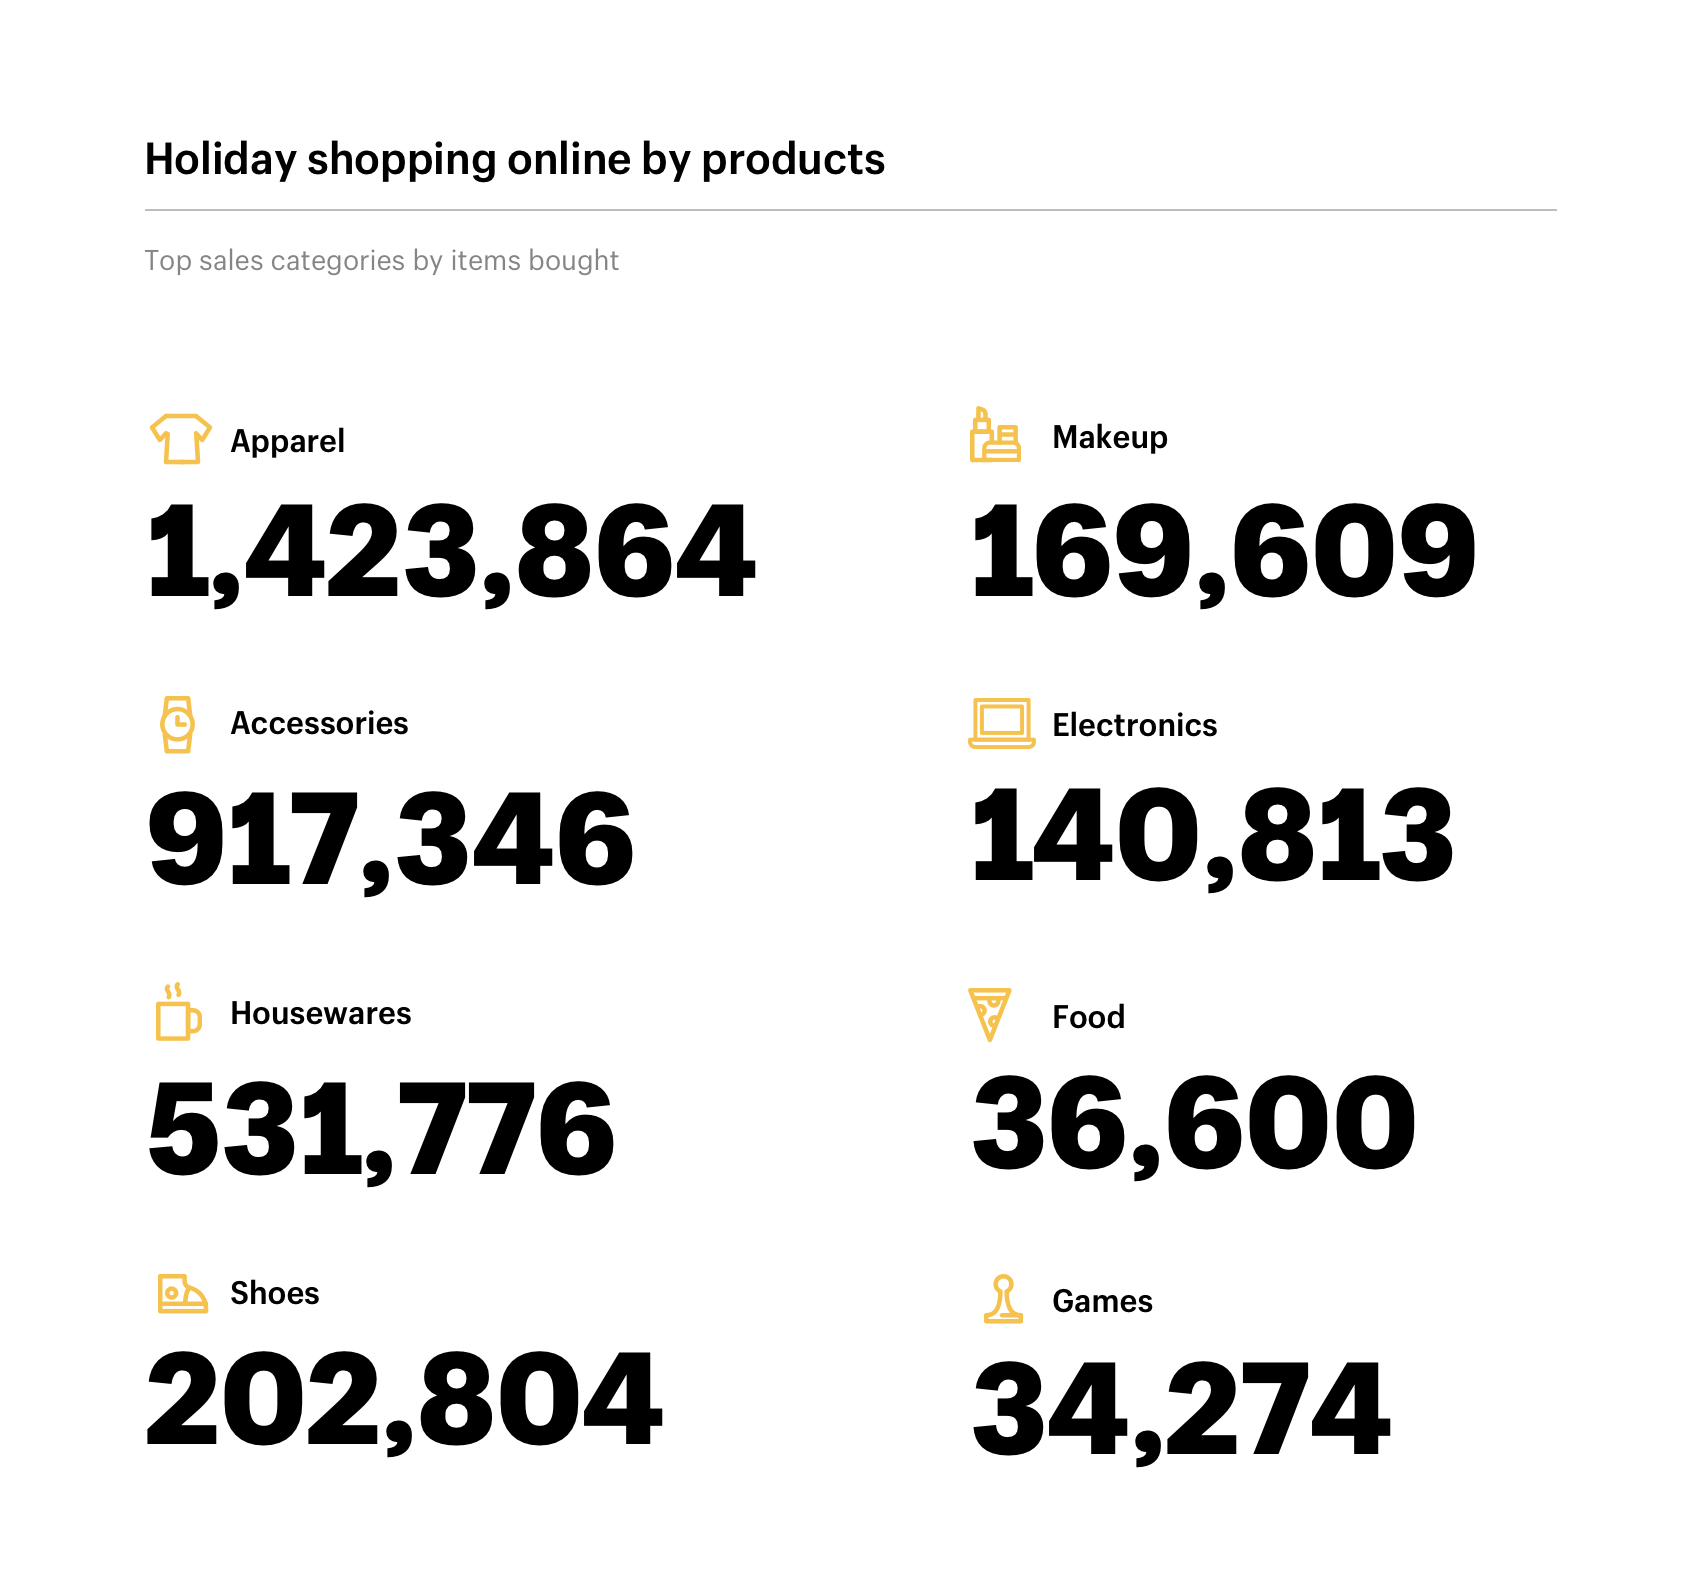 Top products for online holiday shopping trends based on Shopify data